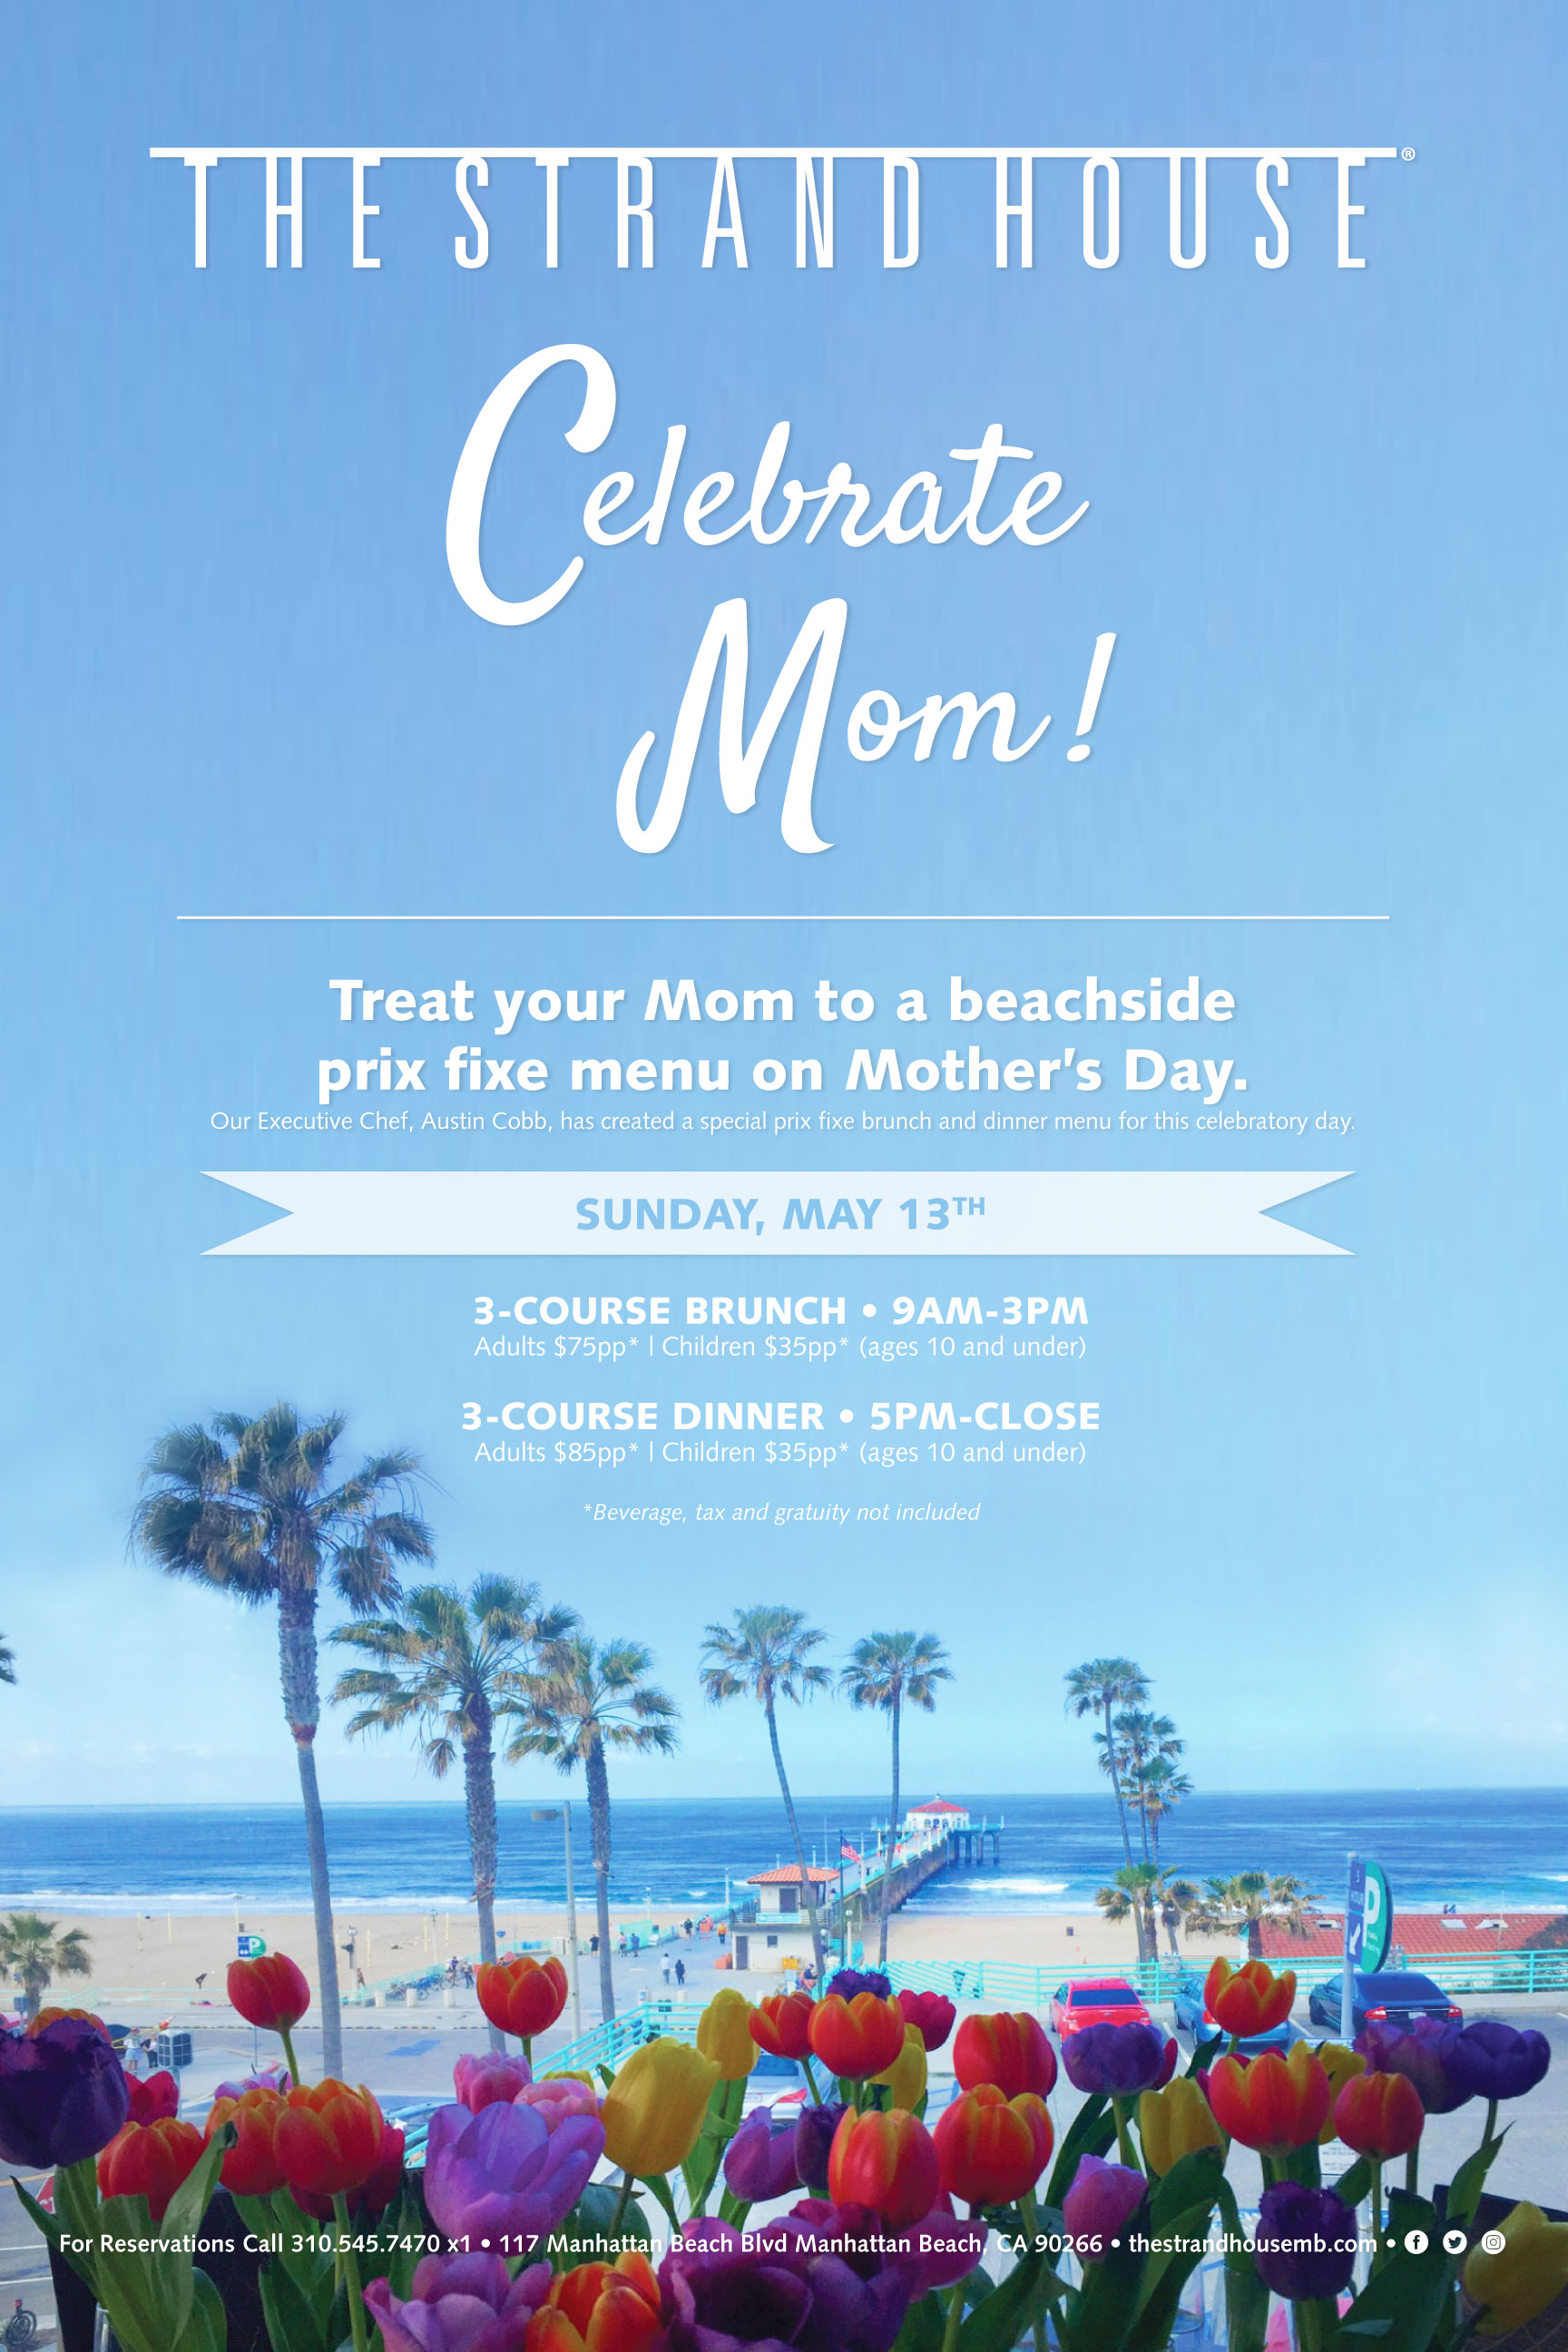 Treat your amazing Mom to a beachside prix fixe brunch on Mother's Day. Our Executive Chef, Austin Cobb, has created special prix fixe brunch and dinner menus for this celebratory day that will be sure to wow Mom!Enjoy sweeping views of Manhattan Beach Pier while indulging in three decadent courses, with menu items like fresh oysters, truffle cheese tart, crispy pork belly, lobster Benedict, house-made Bucatini pasta, grilled Filet Mignon and much more!For Reservations Call 310.545.7470 x1• • • • • • • • • • • • • • • • • • • • • • • • • • • • • • •3-COURSE BRUNCH • 9AM-3PMAdults $75pp*   Children $35pp* (ages 10 and under)3-COURSE DINNER • 5PM-CLOSEAdults $85pp*   Children $35pp* (ages 10 and under)*Beverage, tax and gratuity not included -